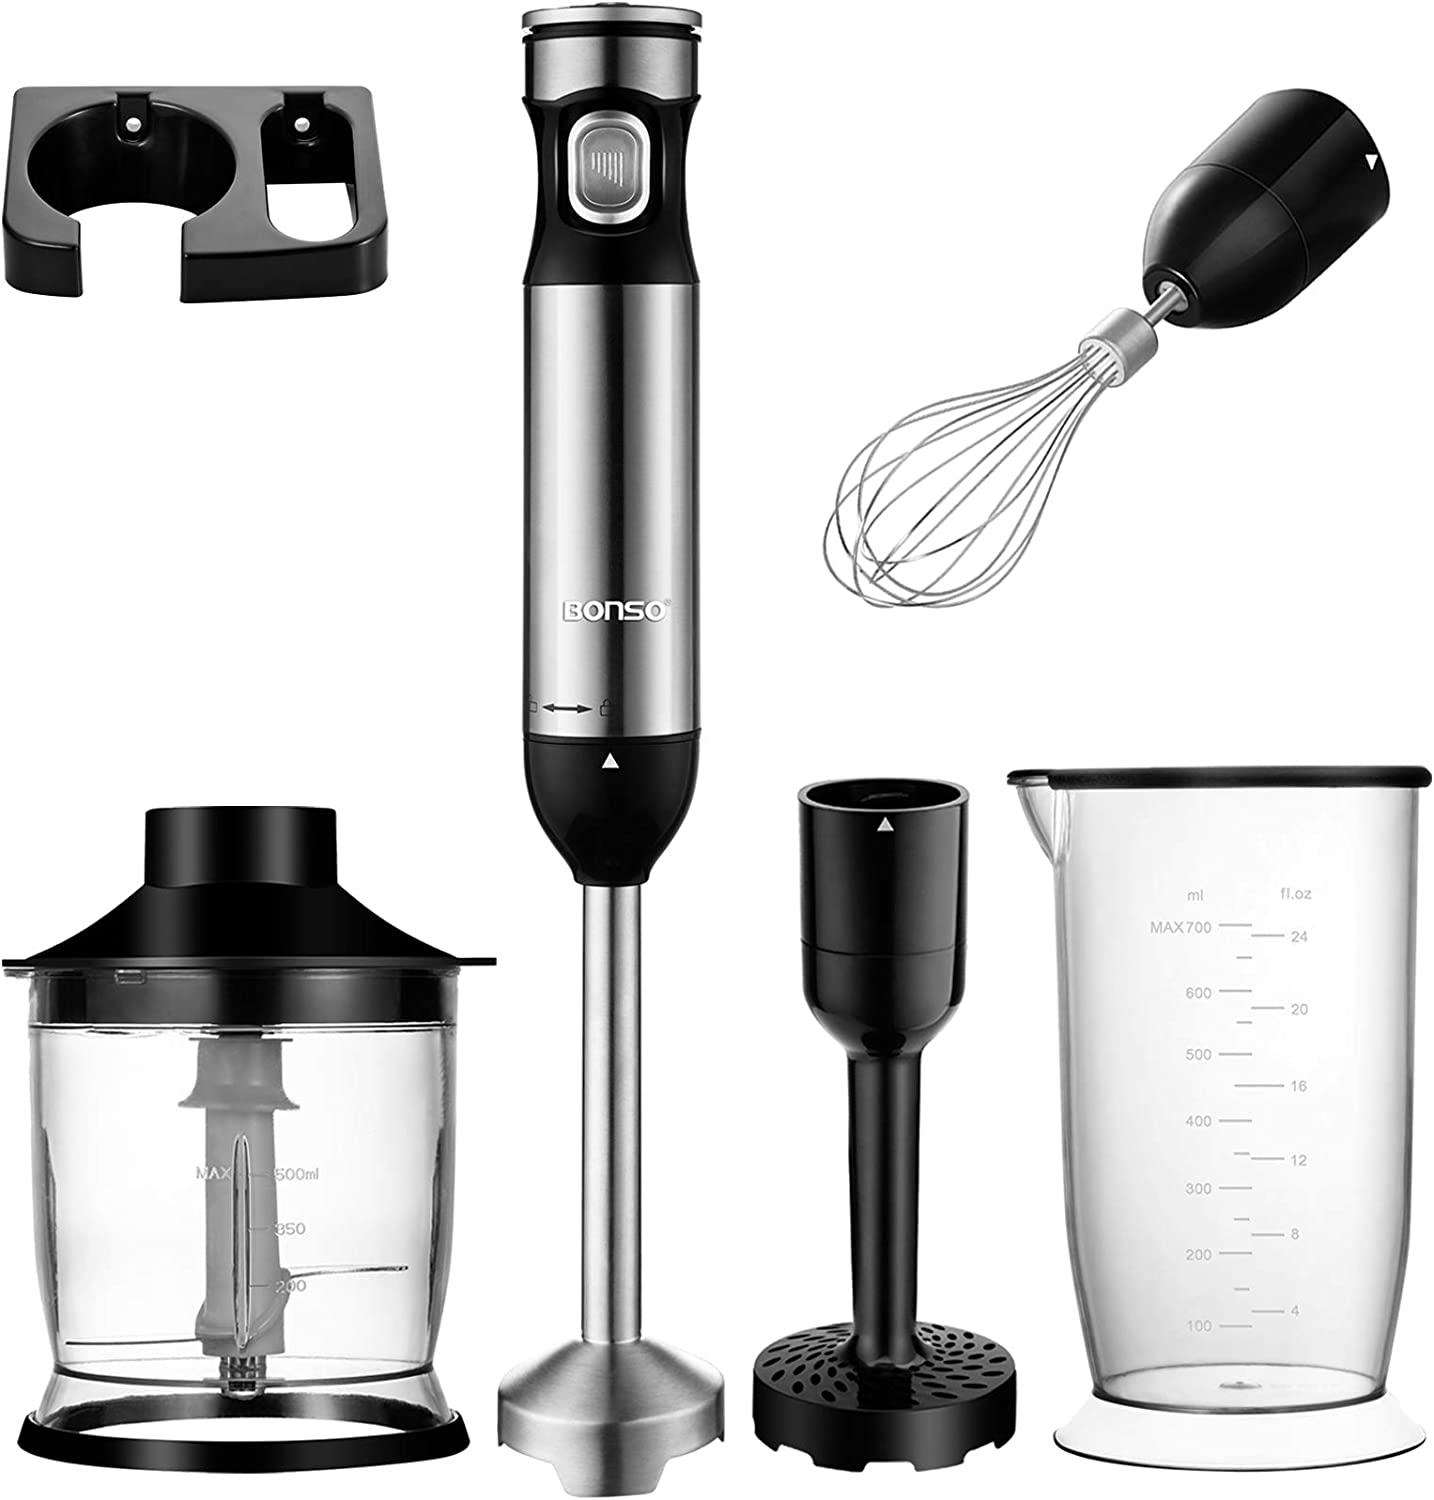 BONSO Immersion Hand Blender Electric, 6-in-1 Multipurpose Immersion Blender Handheld, 300W Powerful Stick Blender with Whisk, Chopper, Masher, 700ml Container & Wall Rack